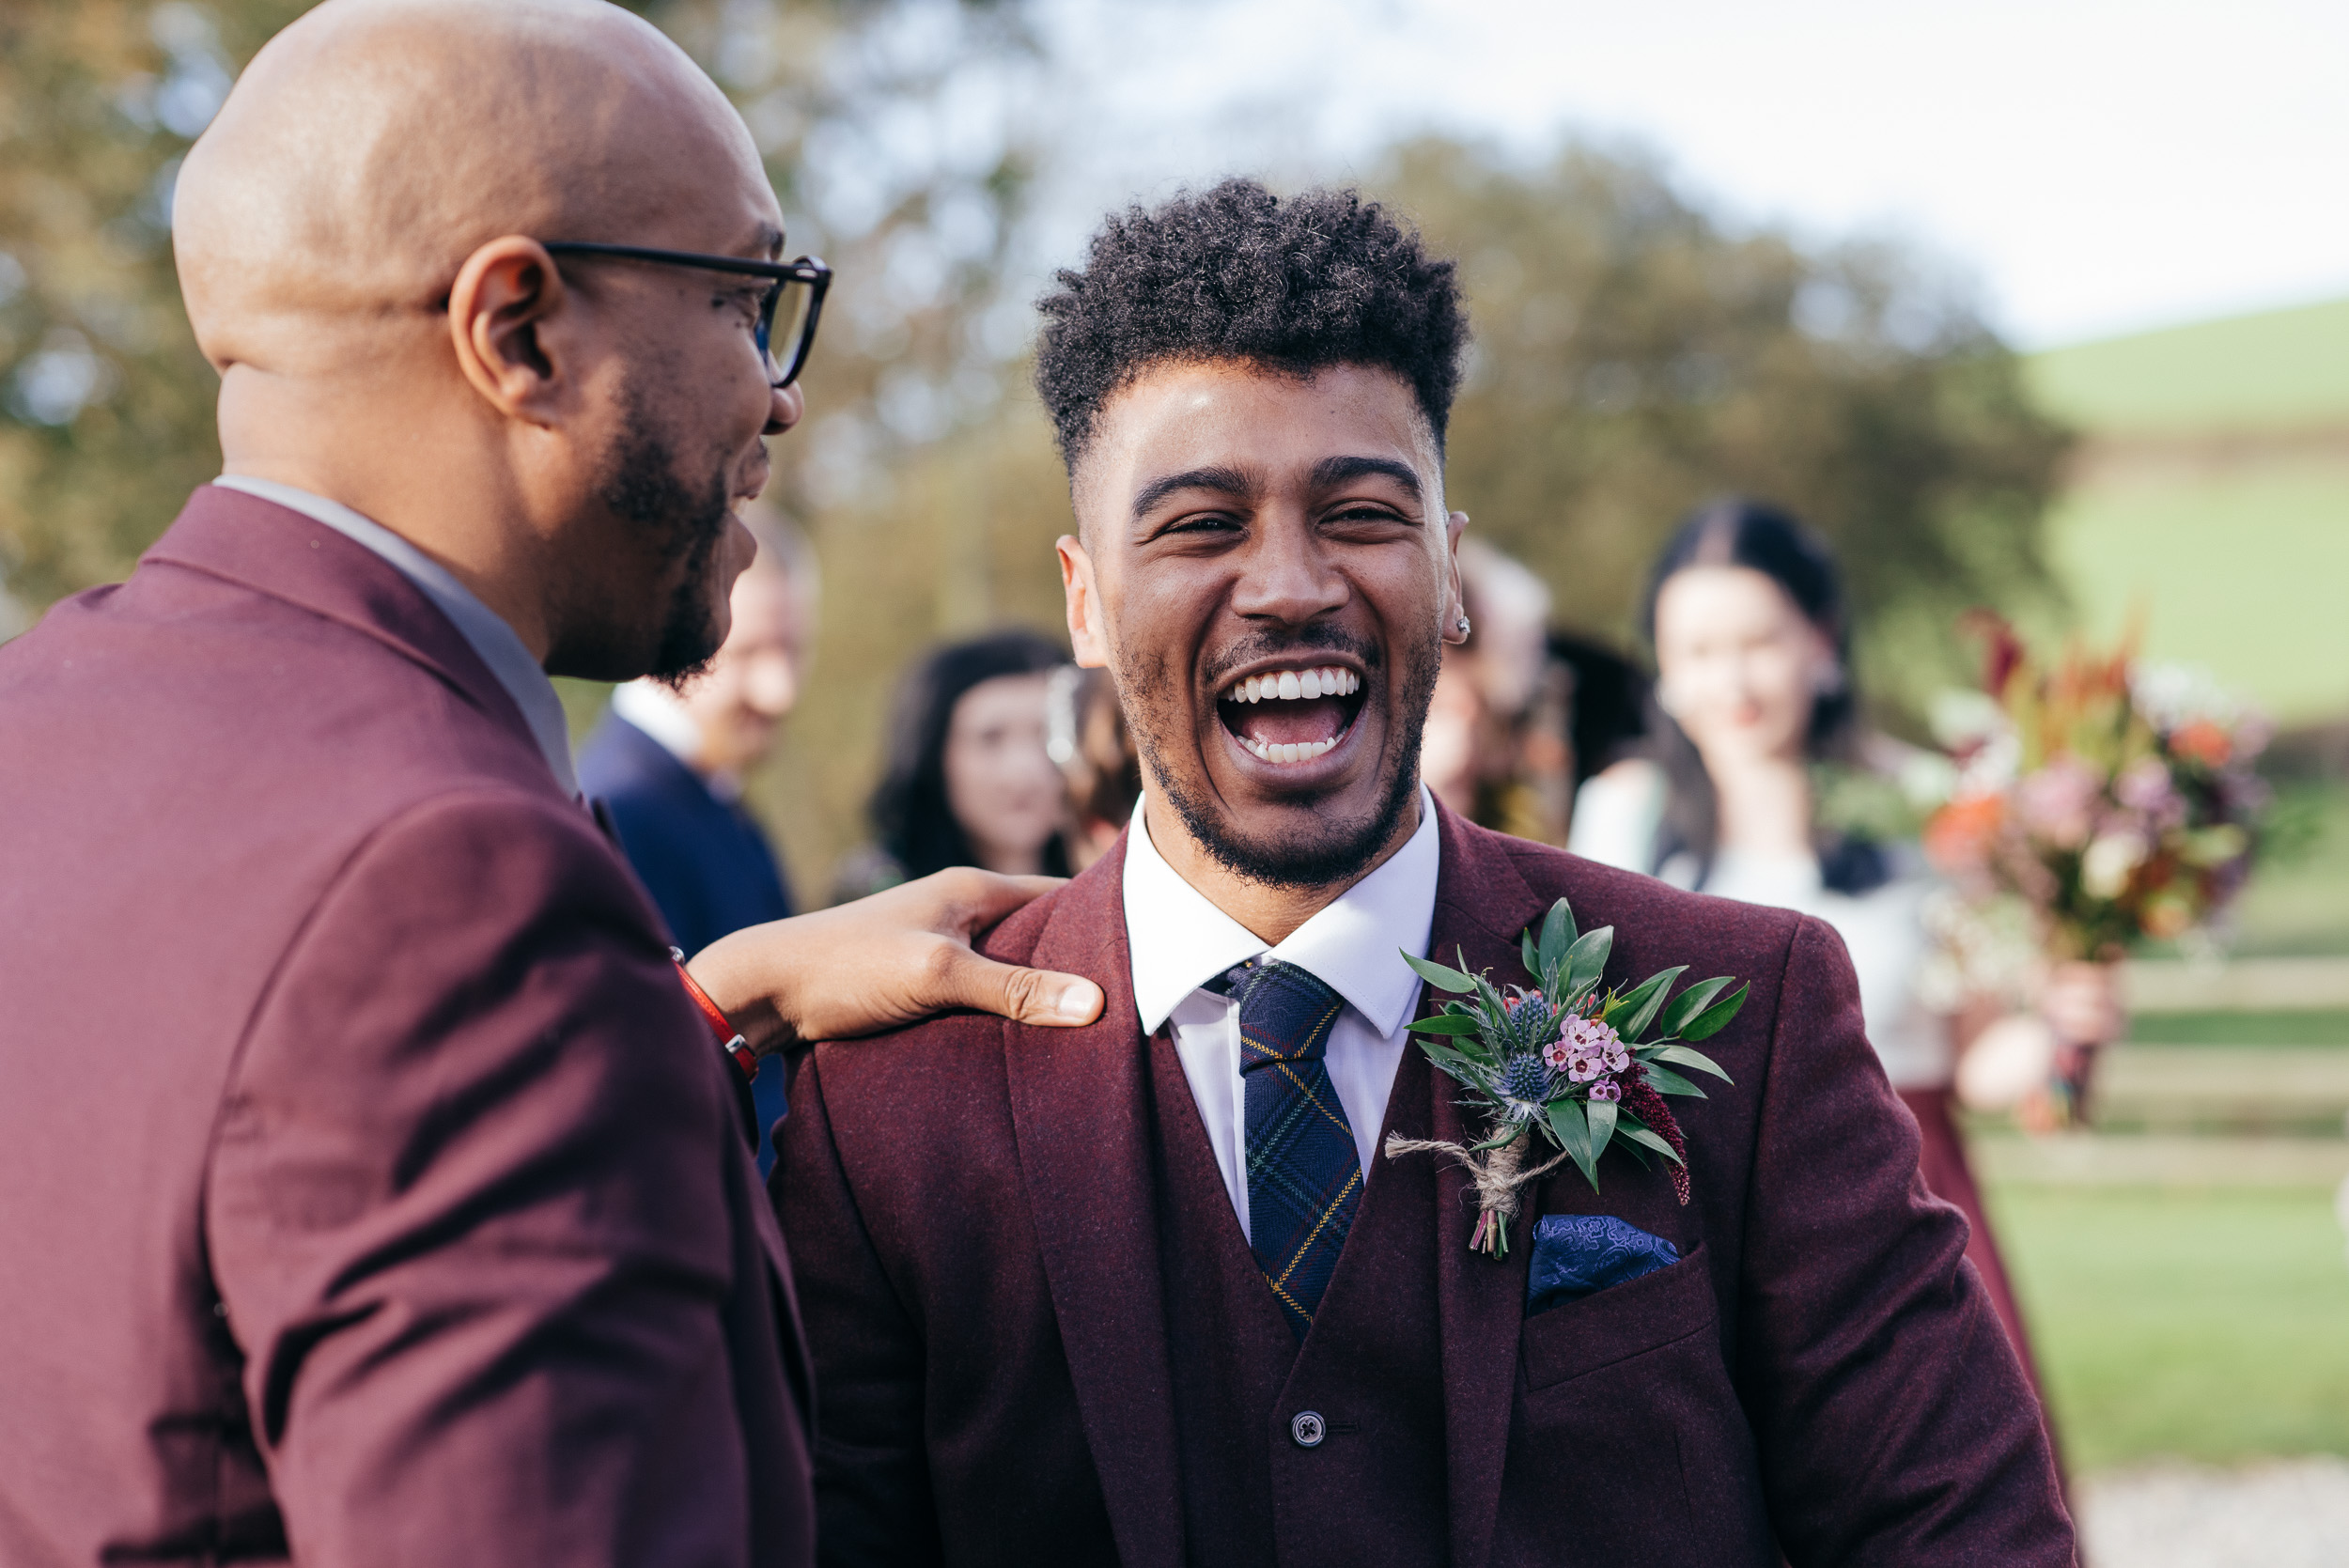 Groom laughter